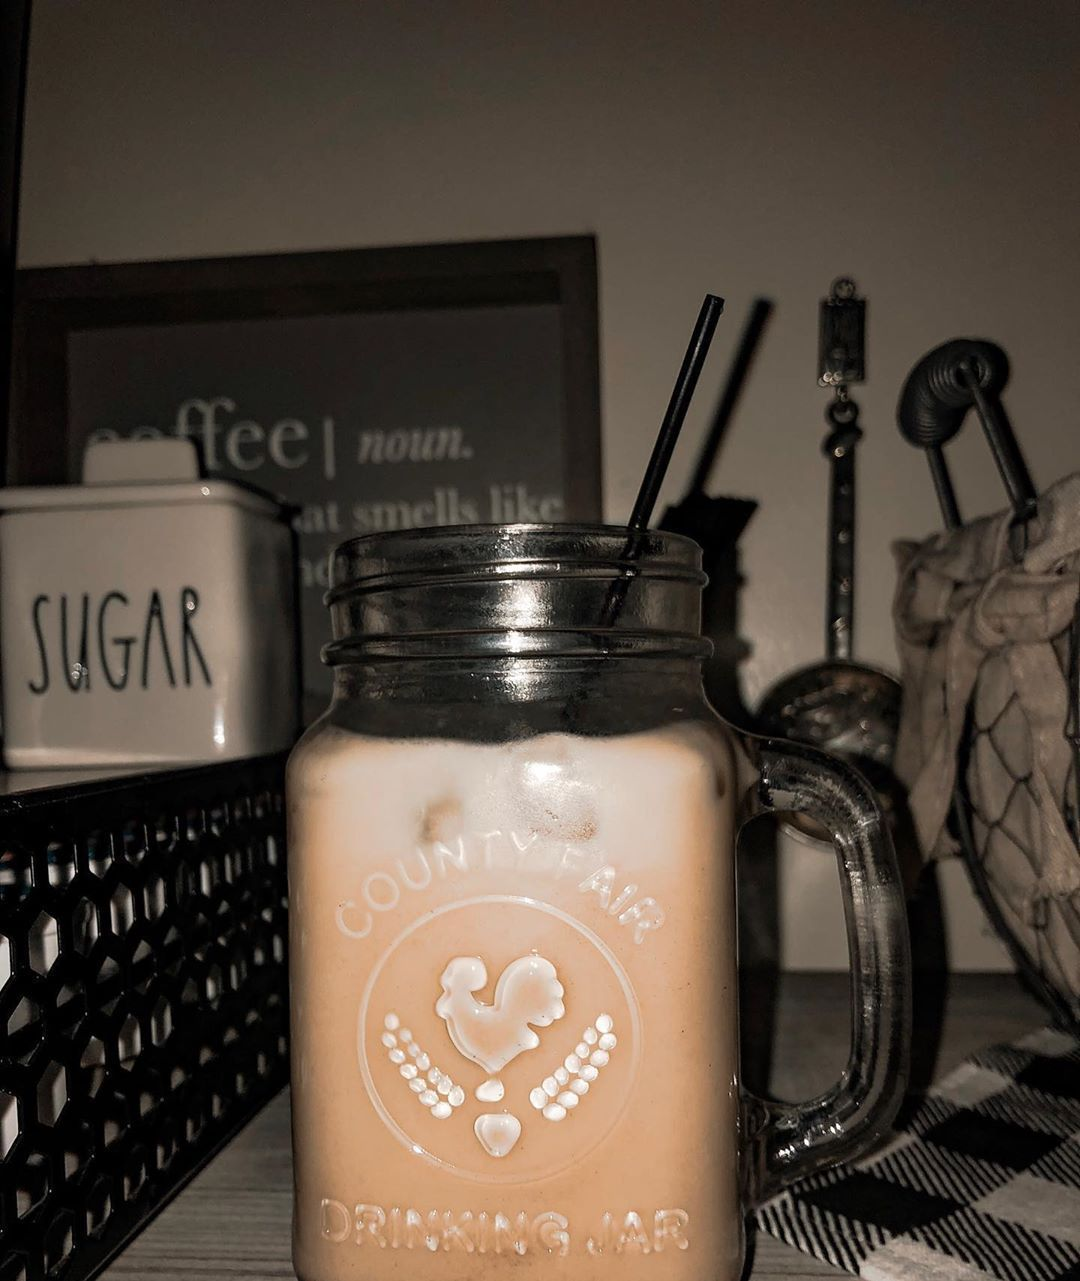 Iced French vanilla latte, but I didn't do the foam on top. I brewed espresso for 1/3 of the cup, added French vanilla creamer, and then added ice. Super simple iced coffee recipe, and good if you want stronger tasting coffee. . . . . #coffee #latte #icedcoffee #frenchvanilla #farmhousestyledecor #farmhouse #farmhousedecor #decor #style #presets #presetparlor #mom #momlife #wife #wifelife #boymom #yum #recipe #recipes #simplerecipe #espresso #frenchvanillacreamerrecipe Iced French vanilla latt #frenchvanillacreamerrecipe